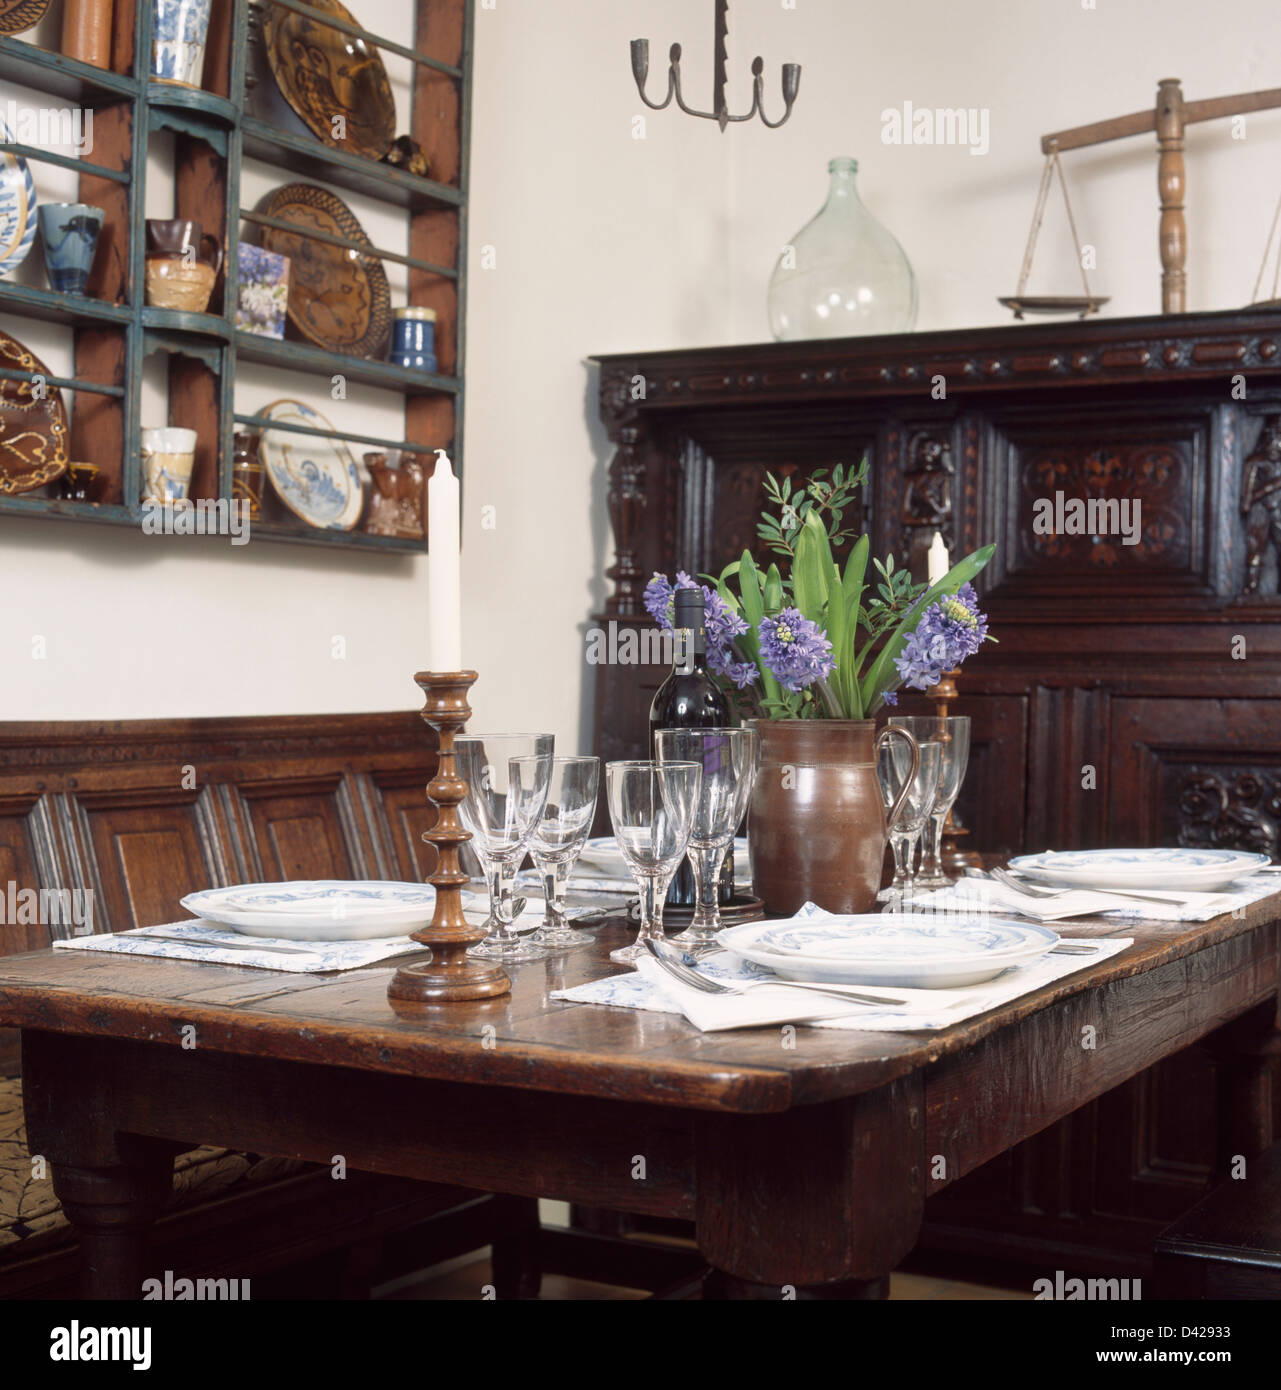 Oak Panelled Wall In Traditional Dining Room With Oak Settle And Glasses  And Place Settings On Table With Vase Of Blue Hyacinths